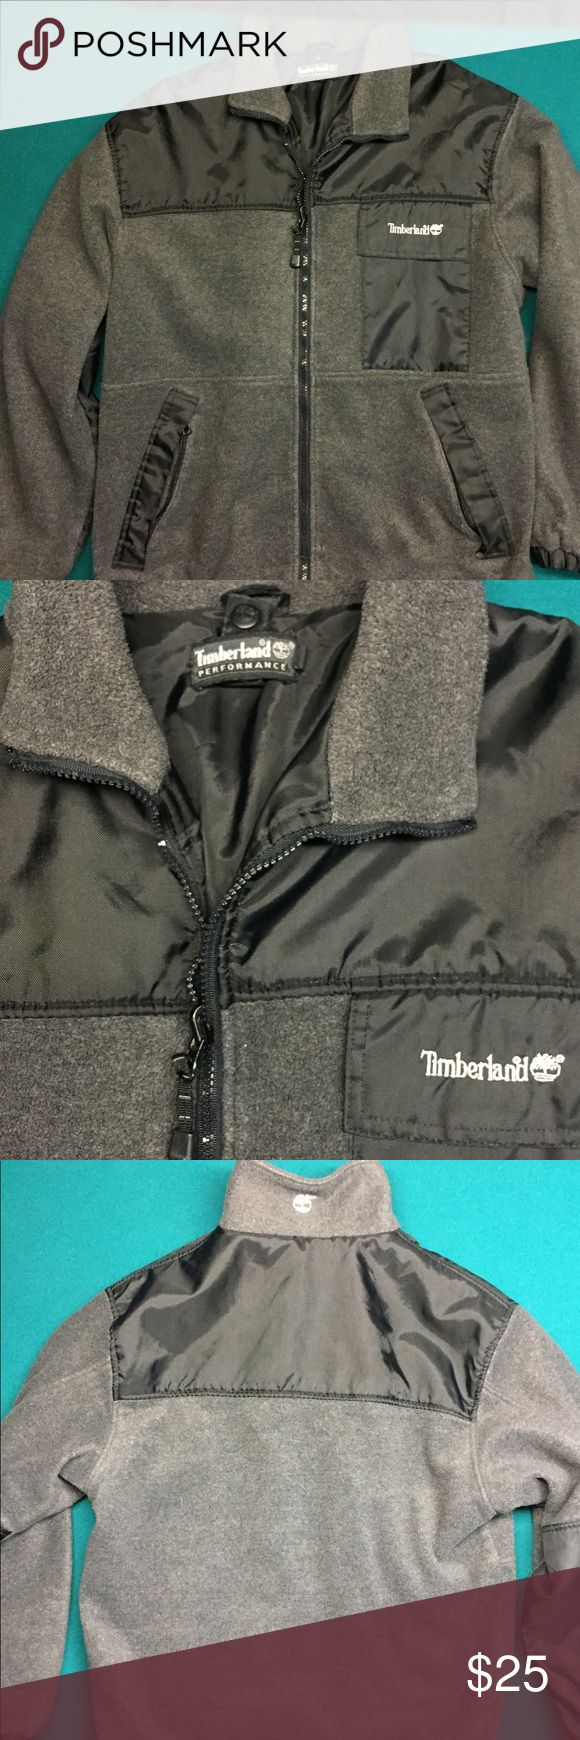 Timberland Jacket Size L Men's Timberland Jacket Timberland Jackets & Coats Performance Jackets